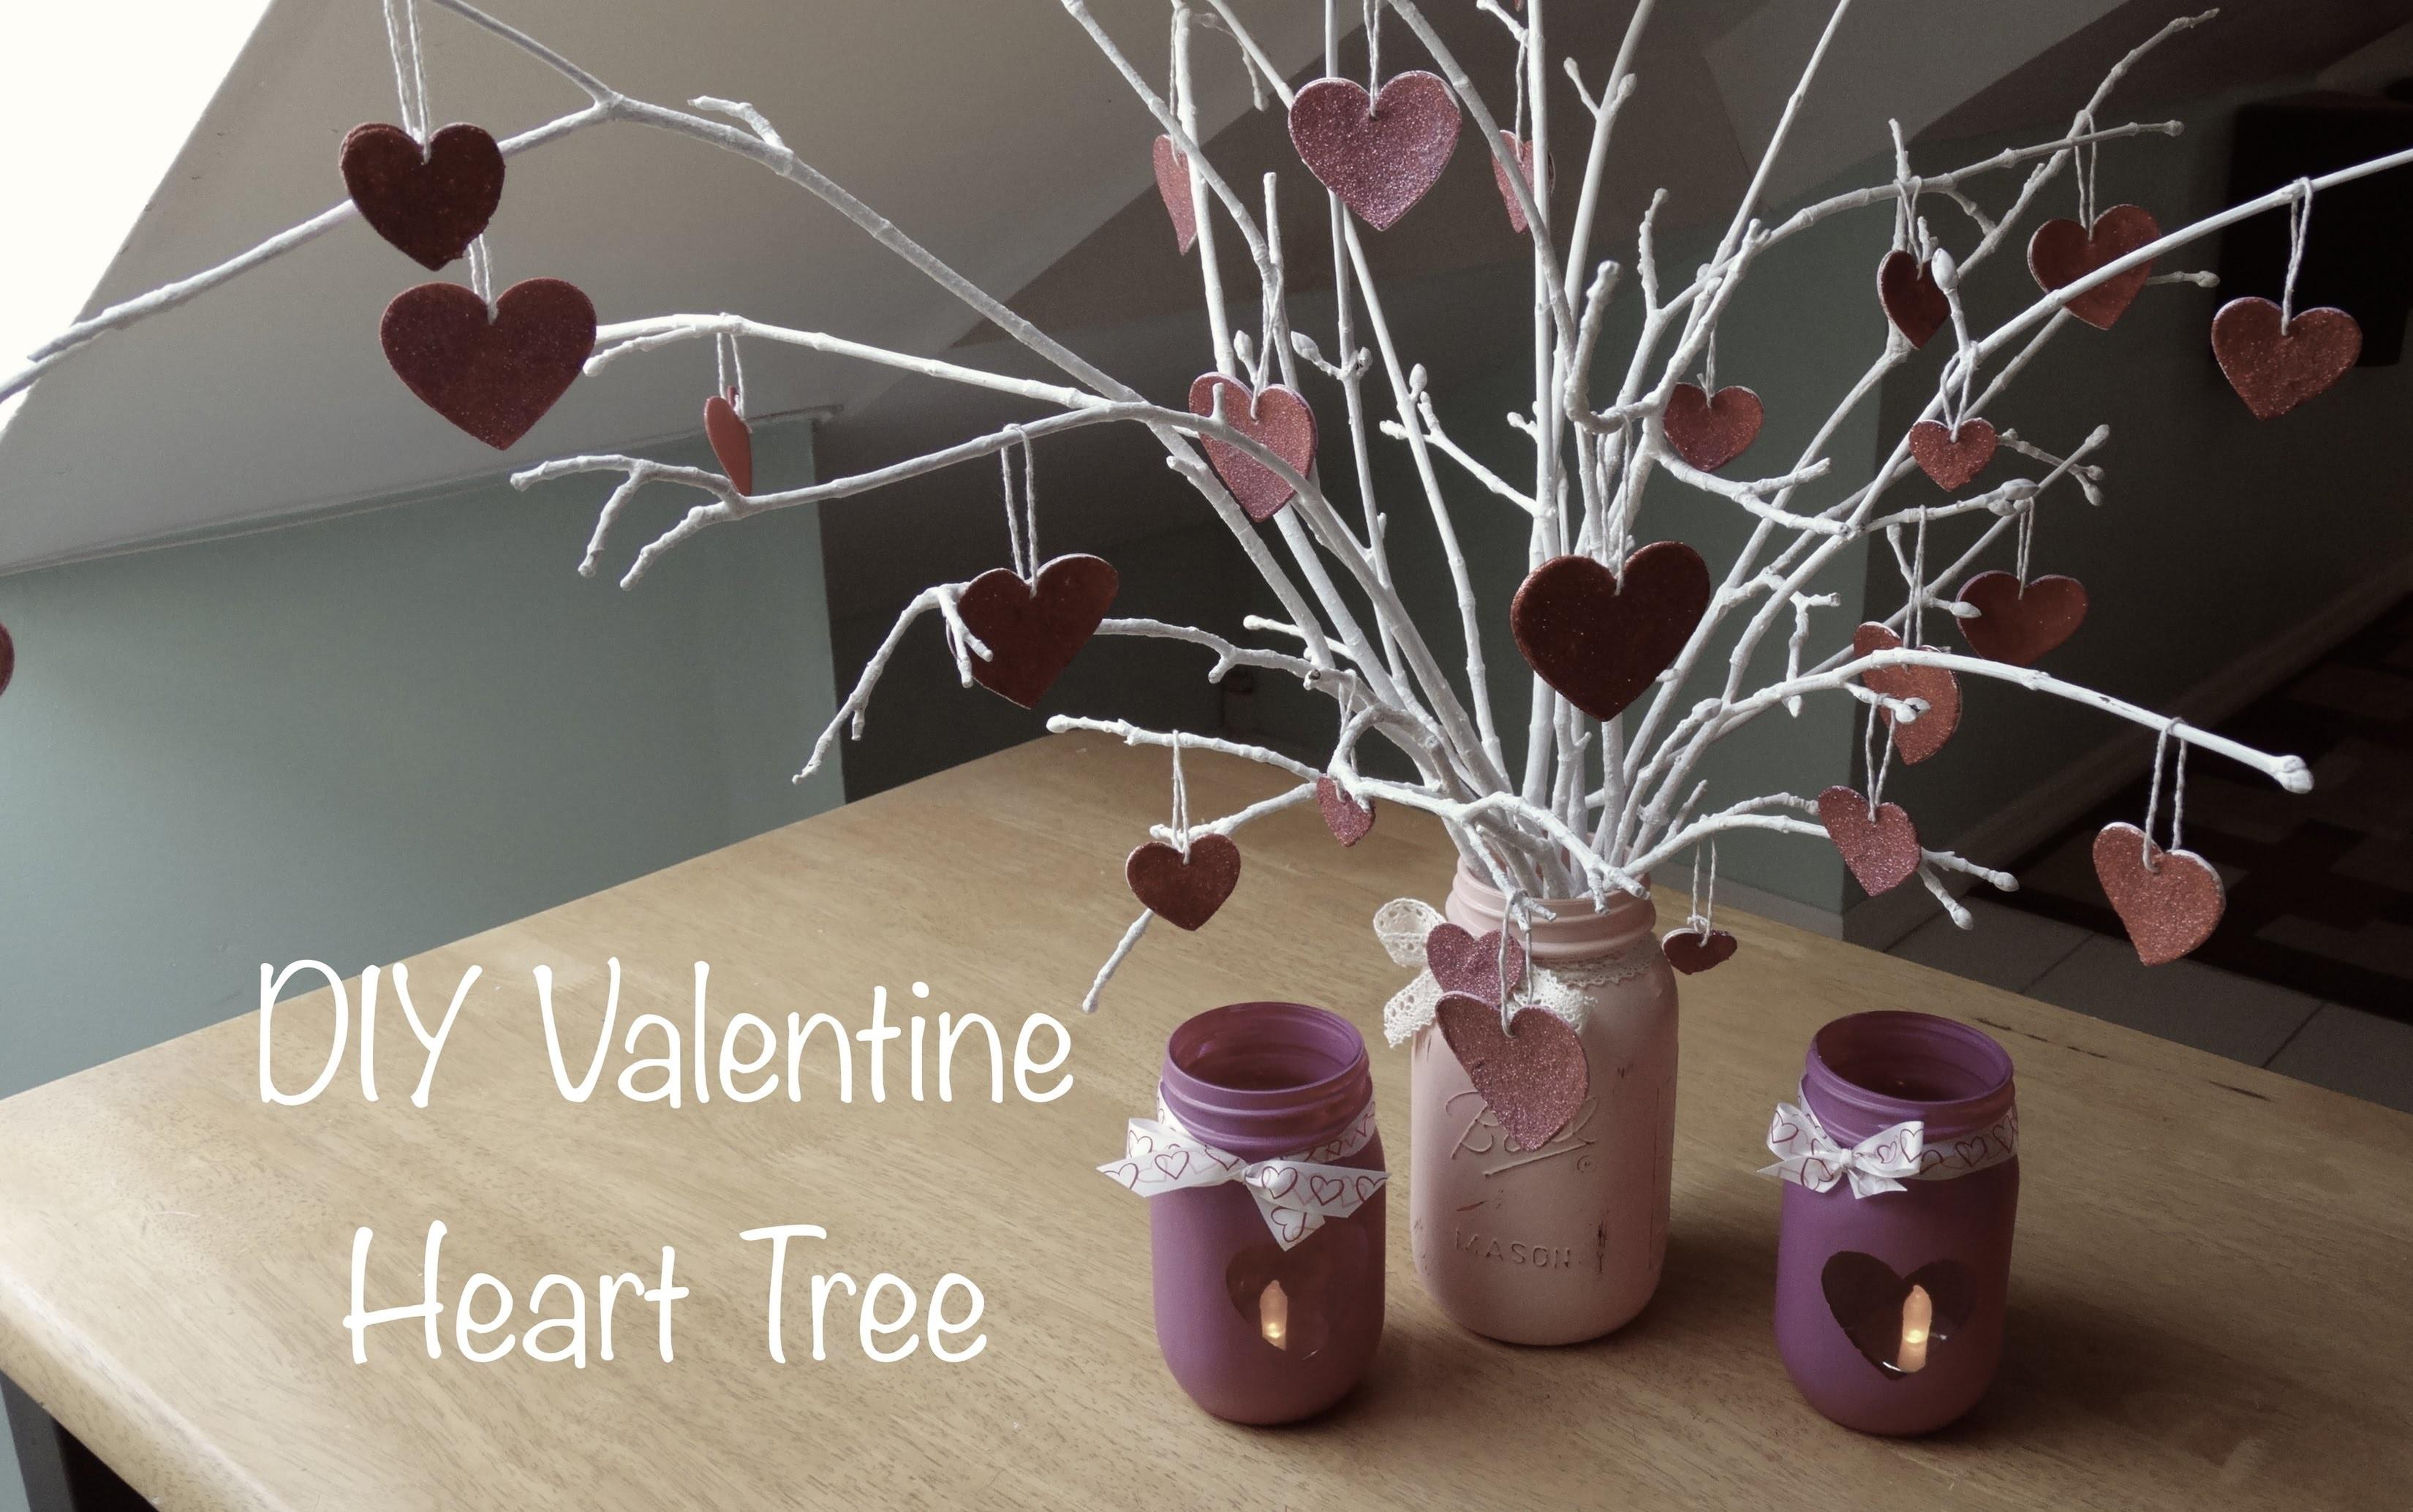 Diy Valentine Heart Tree Gifts Decor